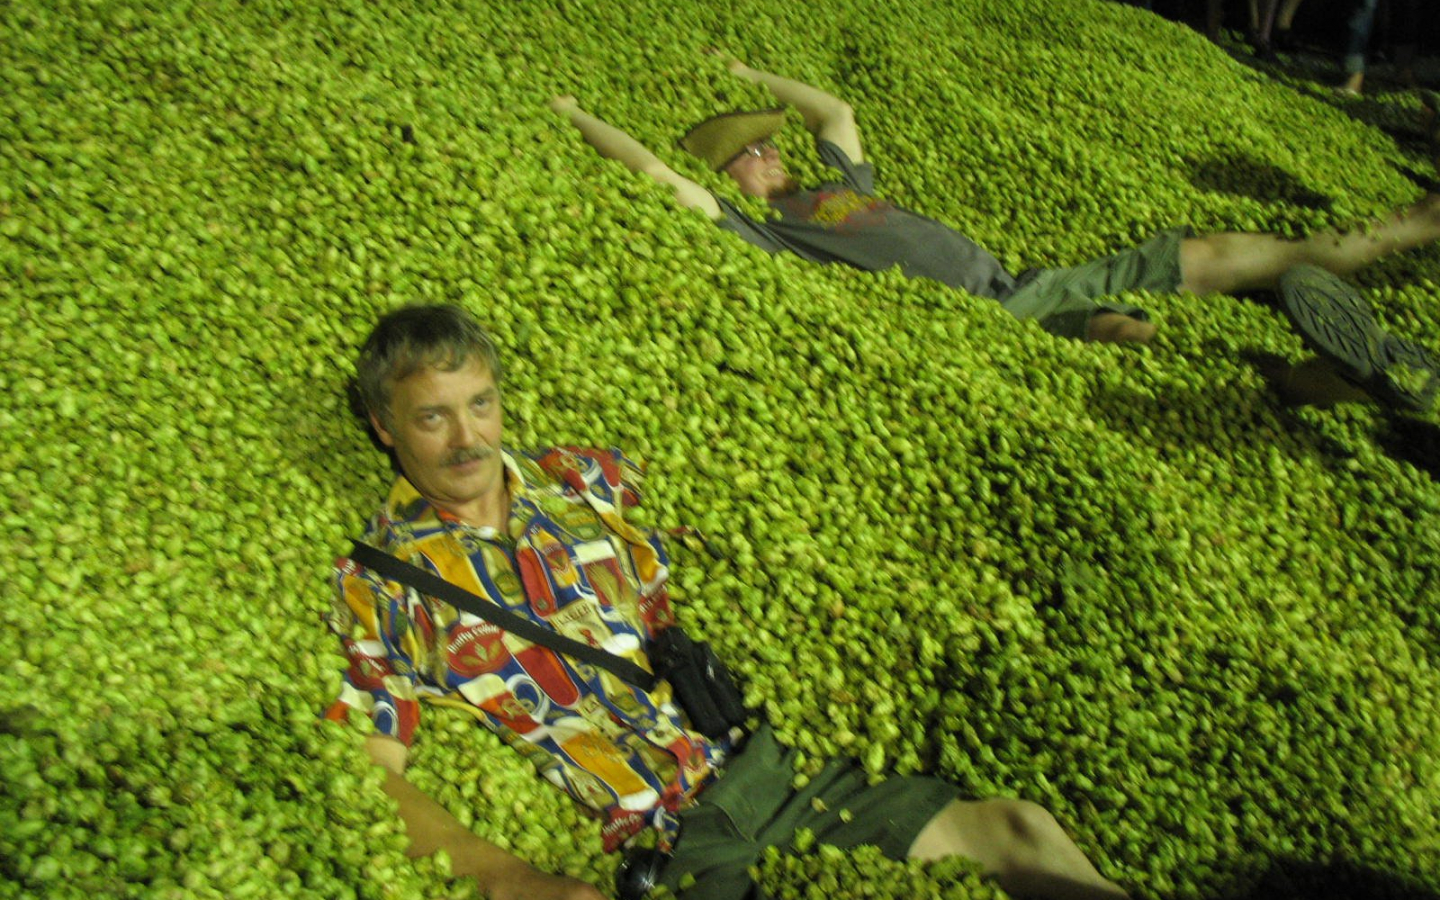 Download Hops Wallpaper Pictures 1600x1200 40 Beer Hops